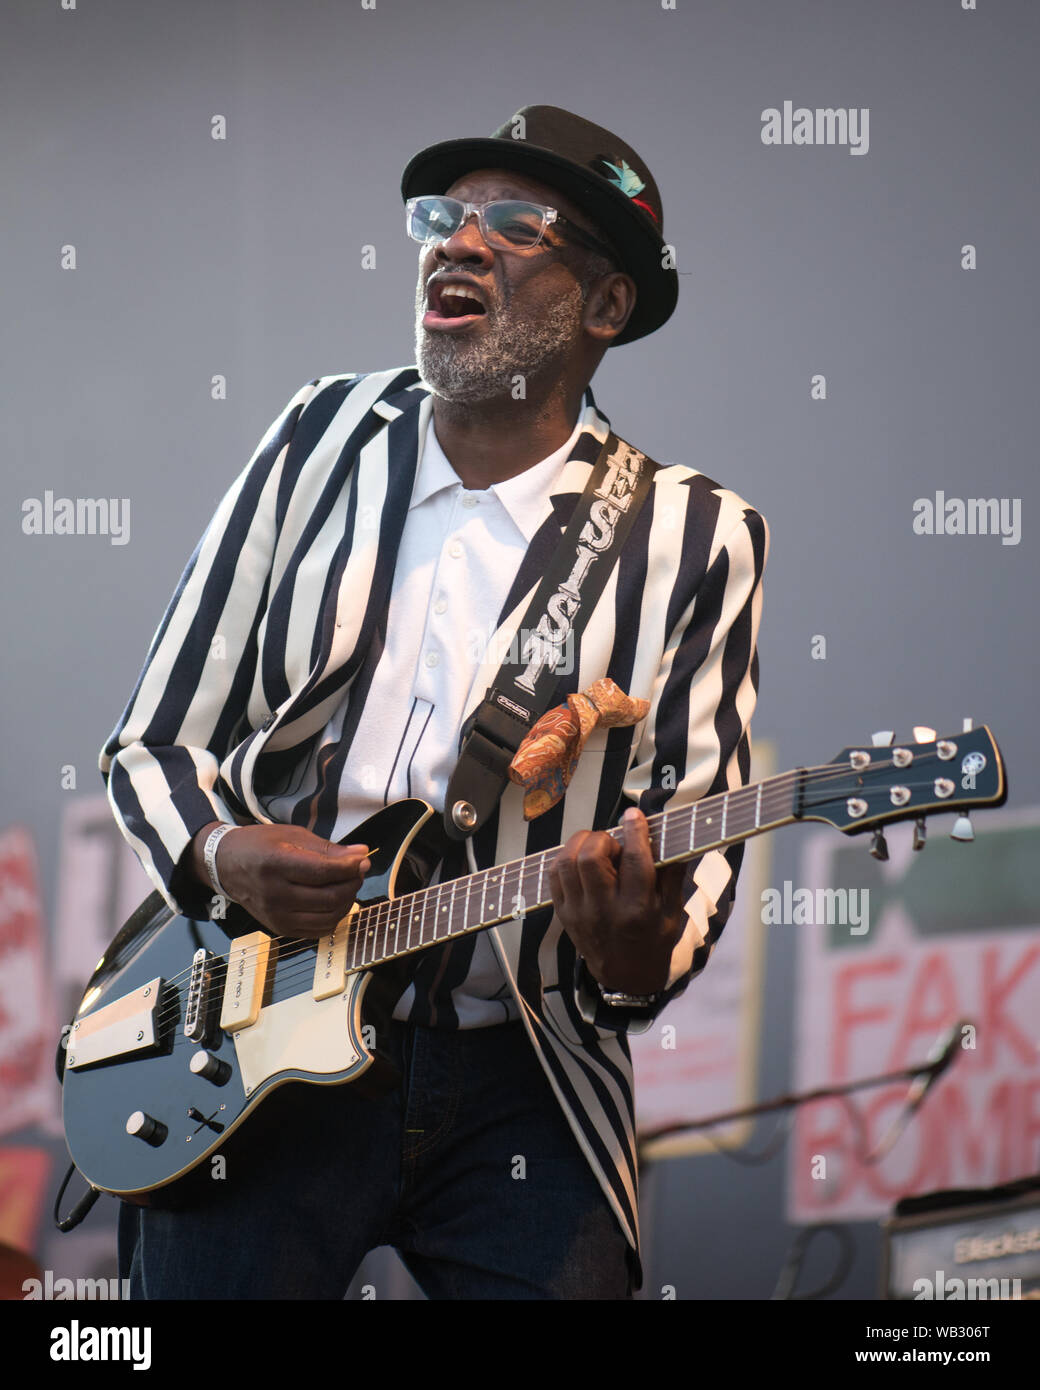 The Specials / Terry Hall at Victorious Festival 2019 Stock Photo